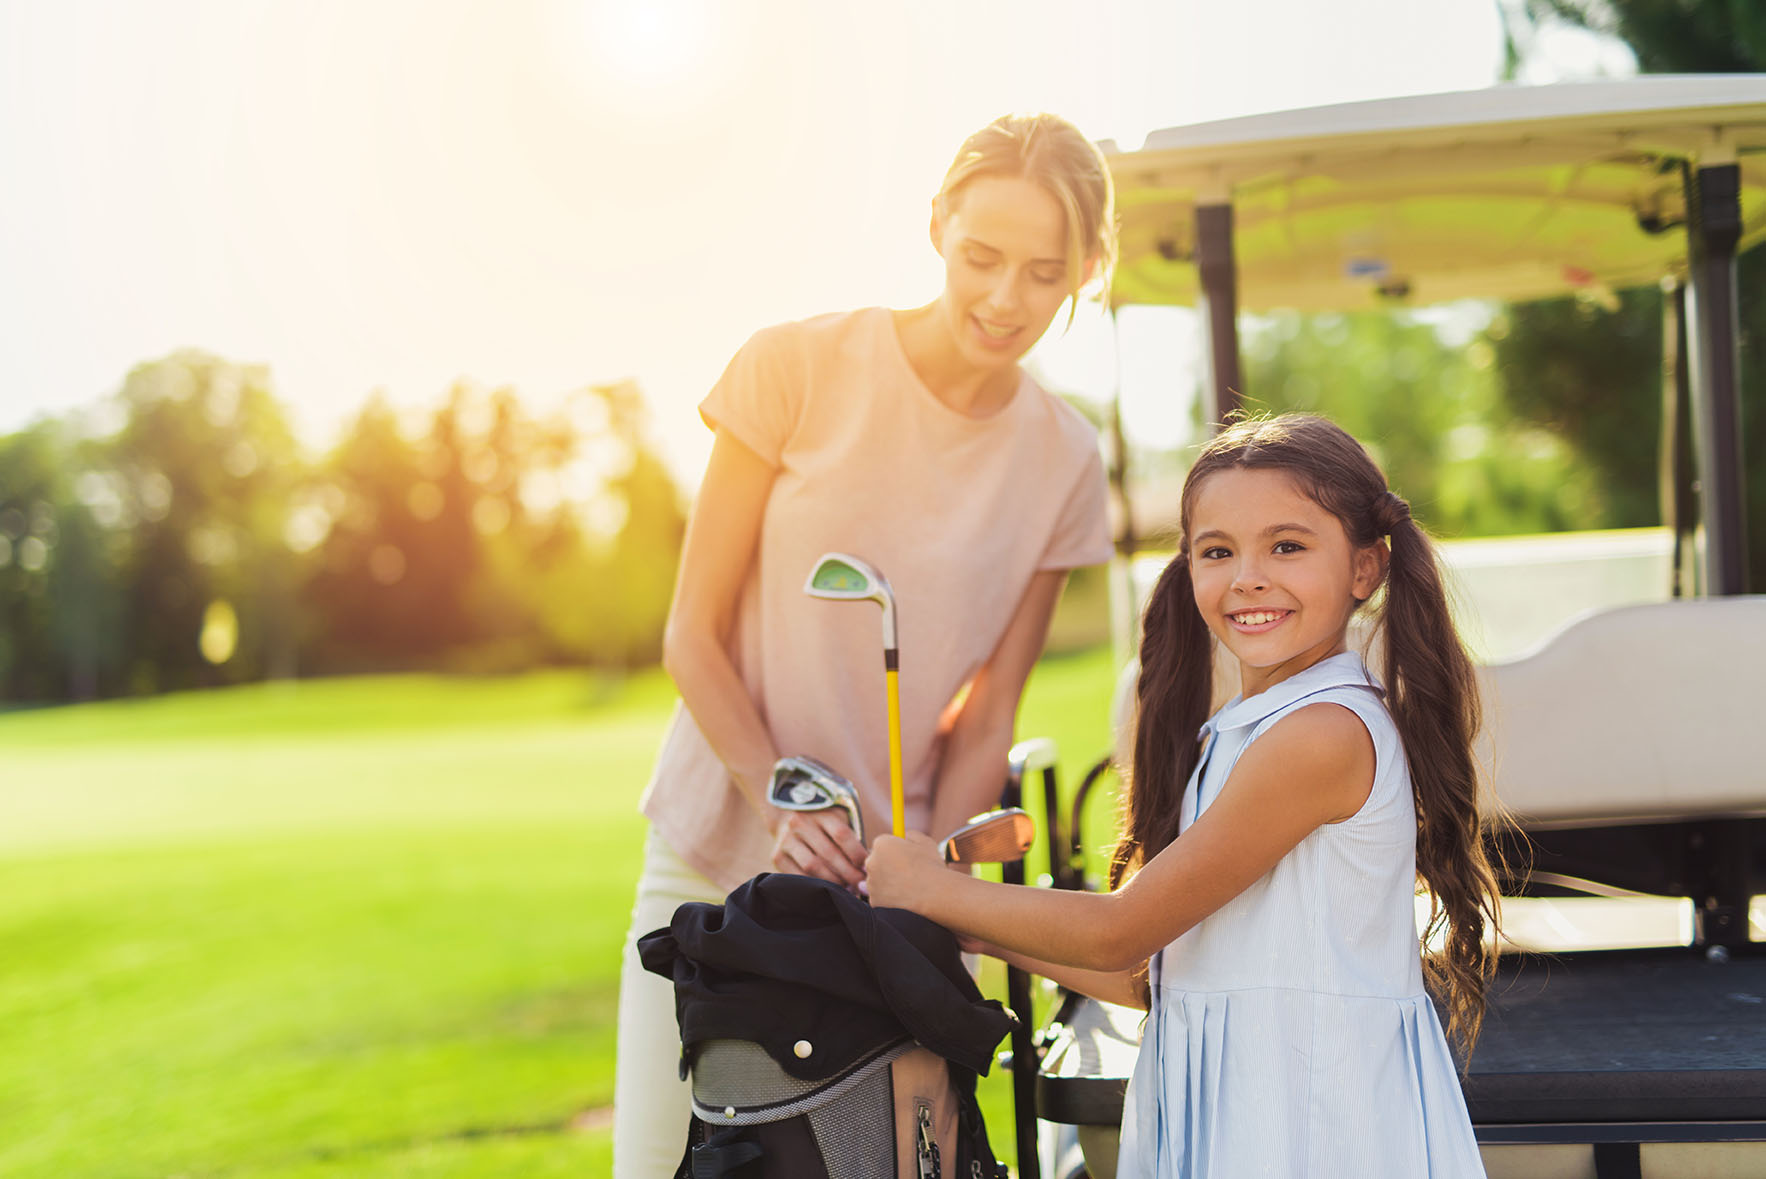 The girl takes out the golf club from the bag and looks into the lens. A woman is standing behind her and looking at the golf club she is pulling out